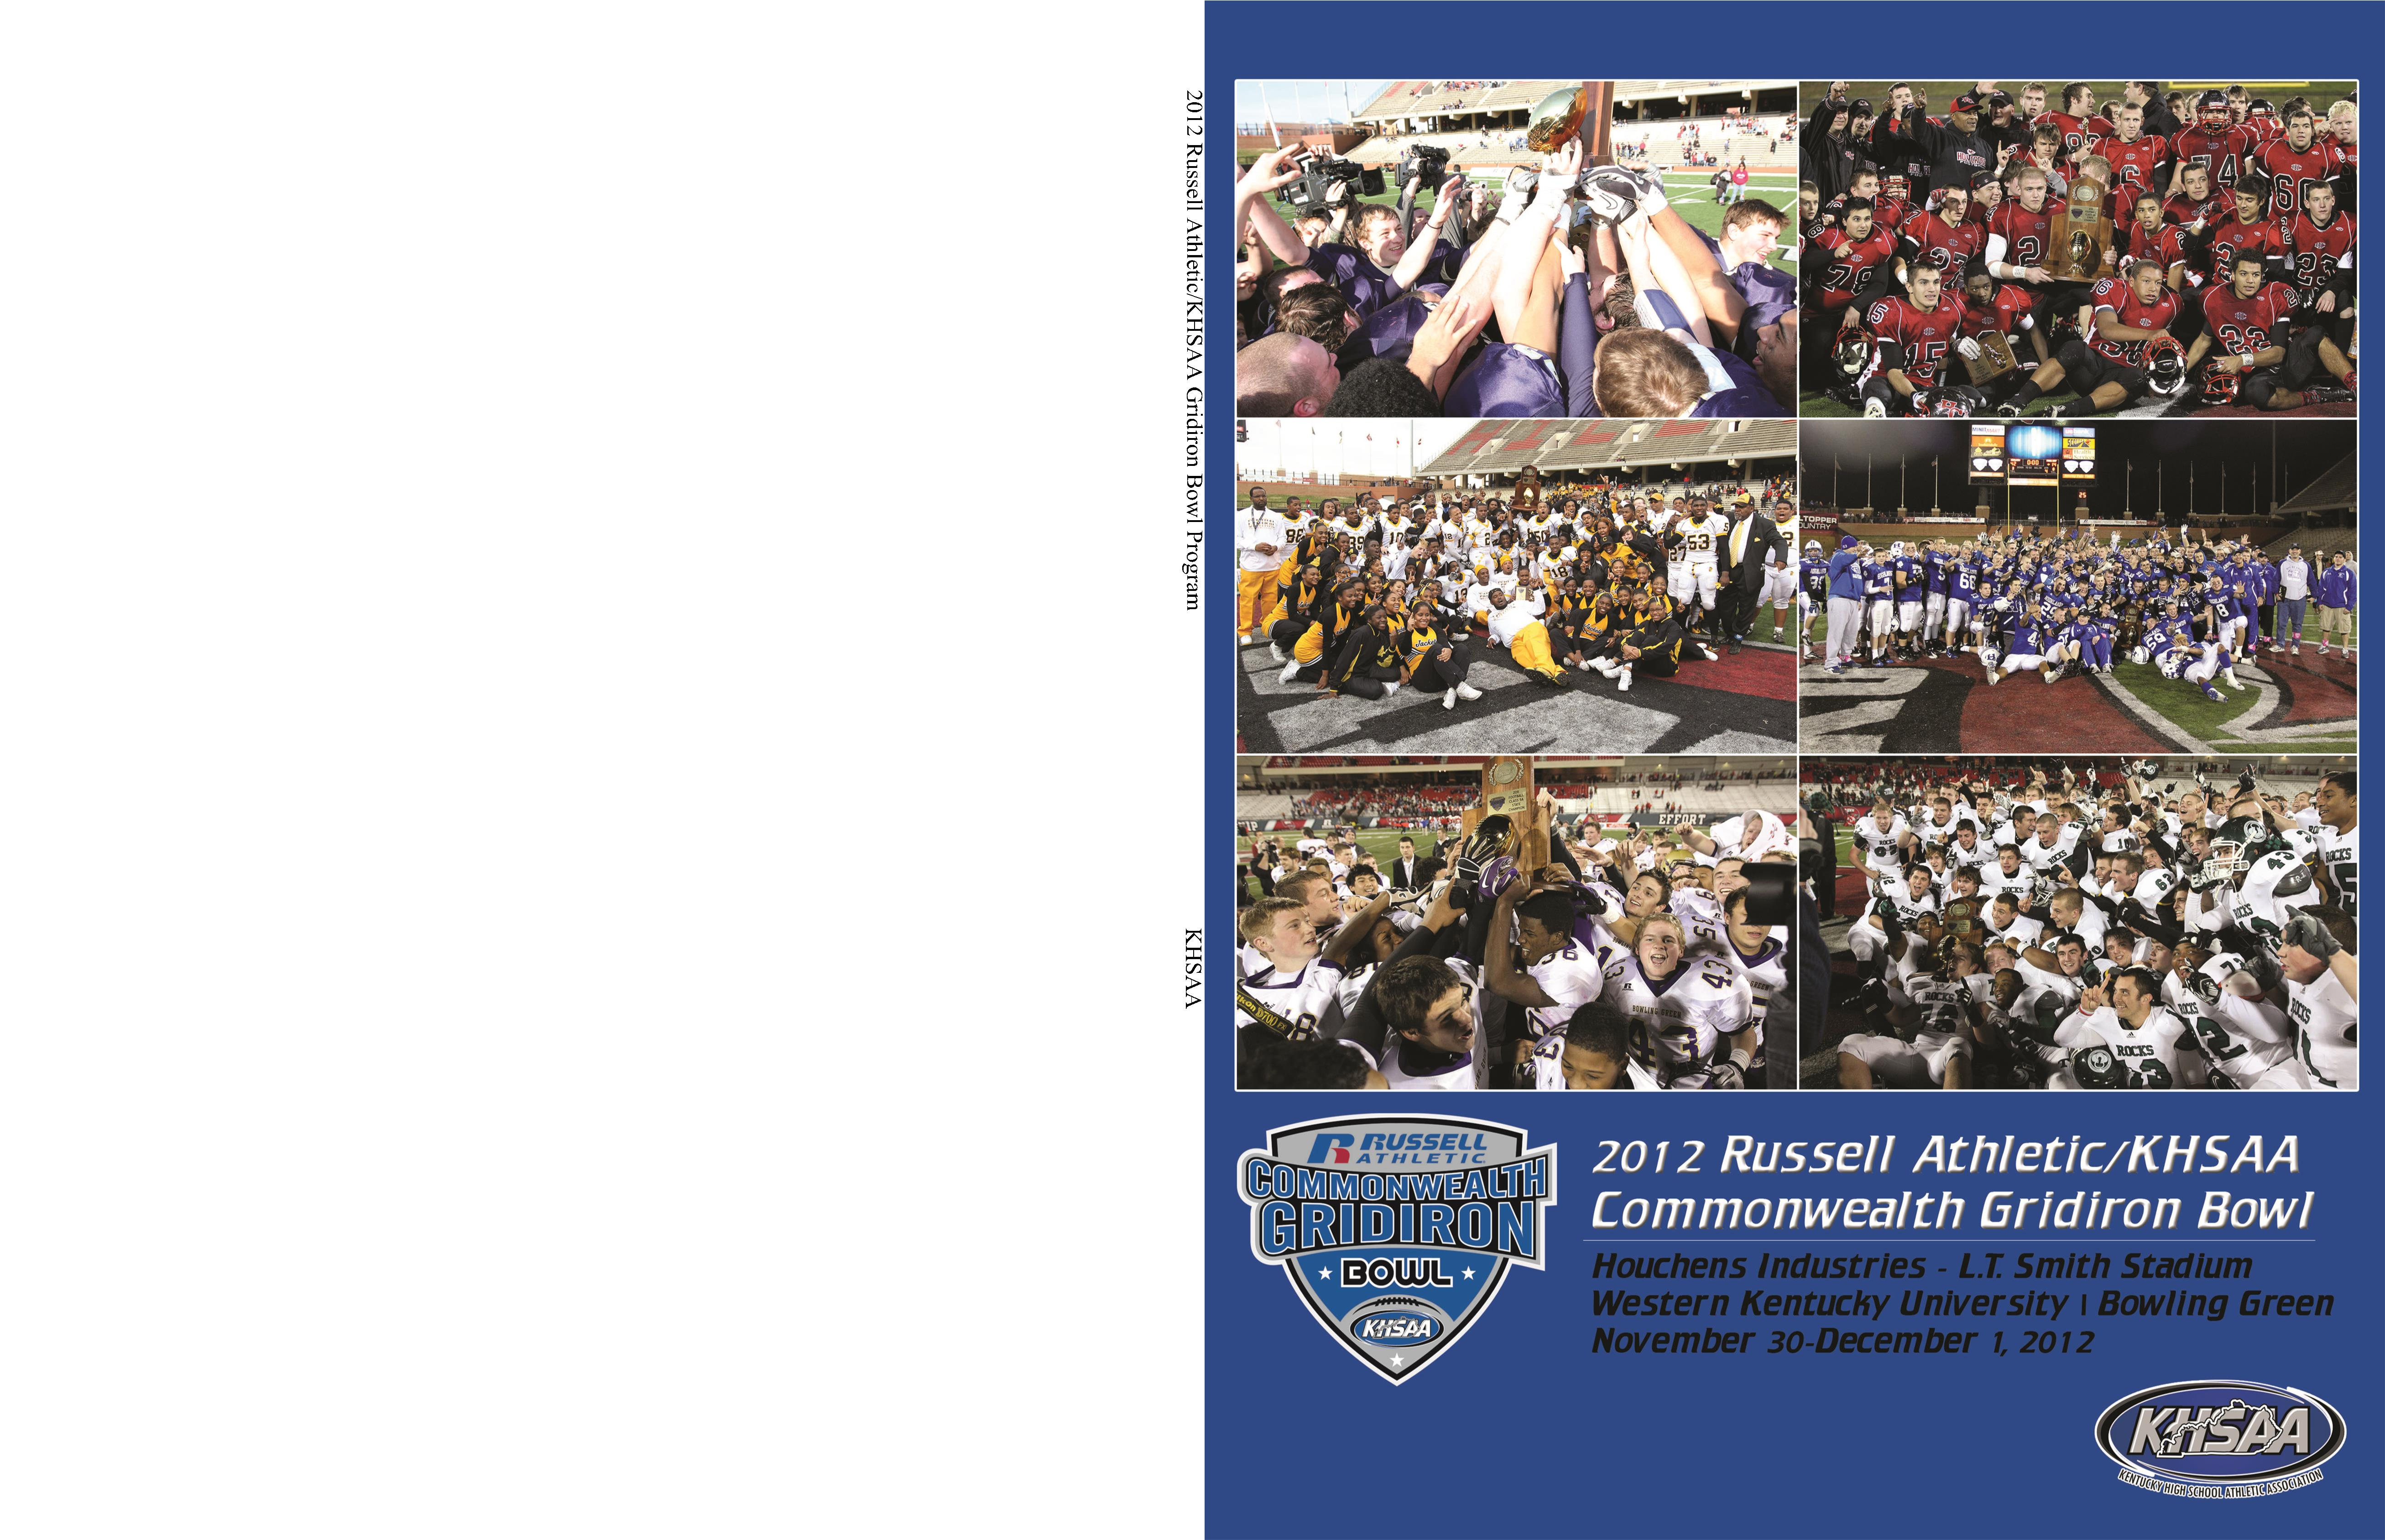 2012 Russell Athletic/KHSAA Gridiron Bowl Program cover image